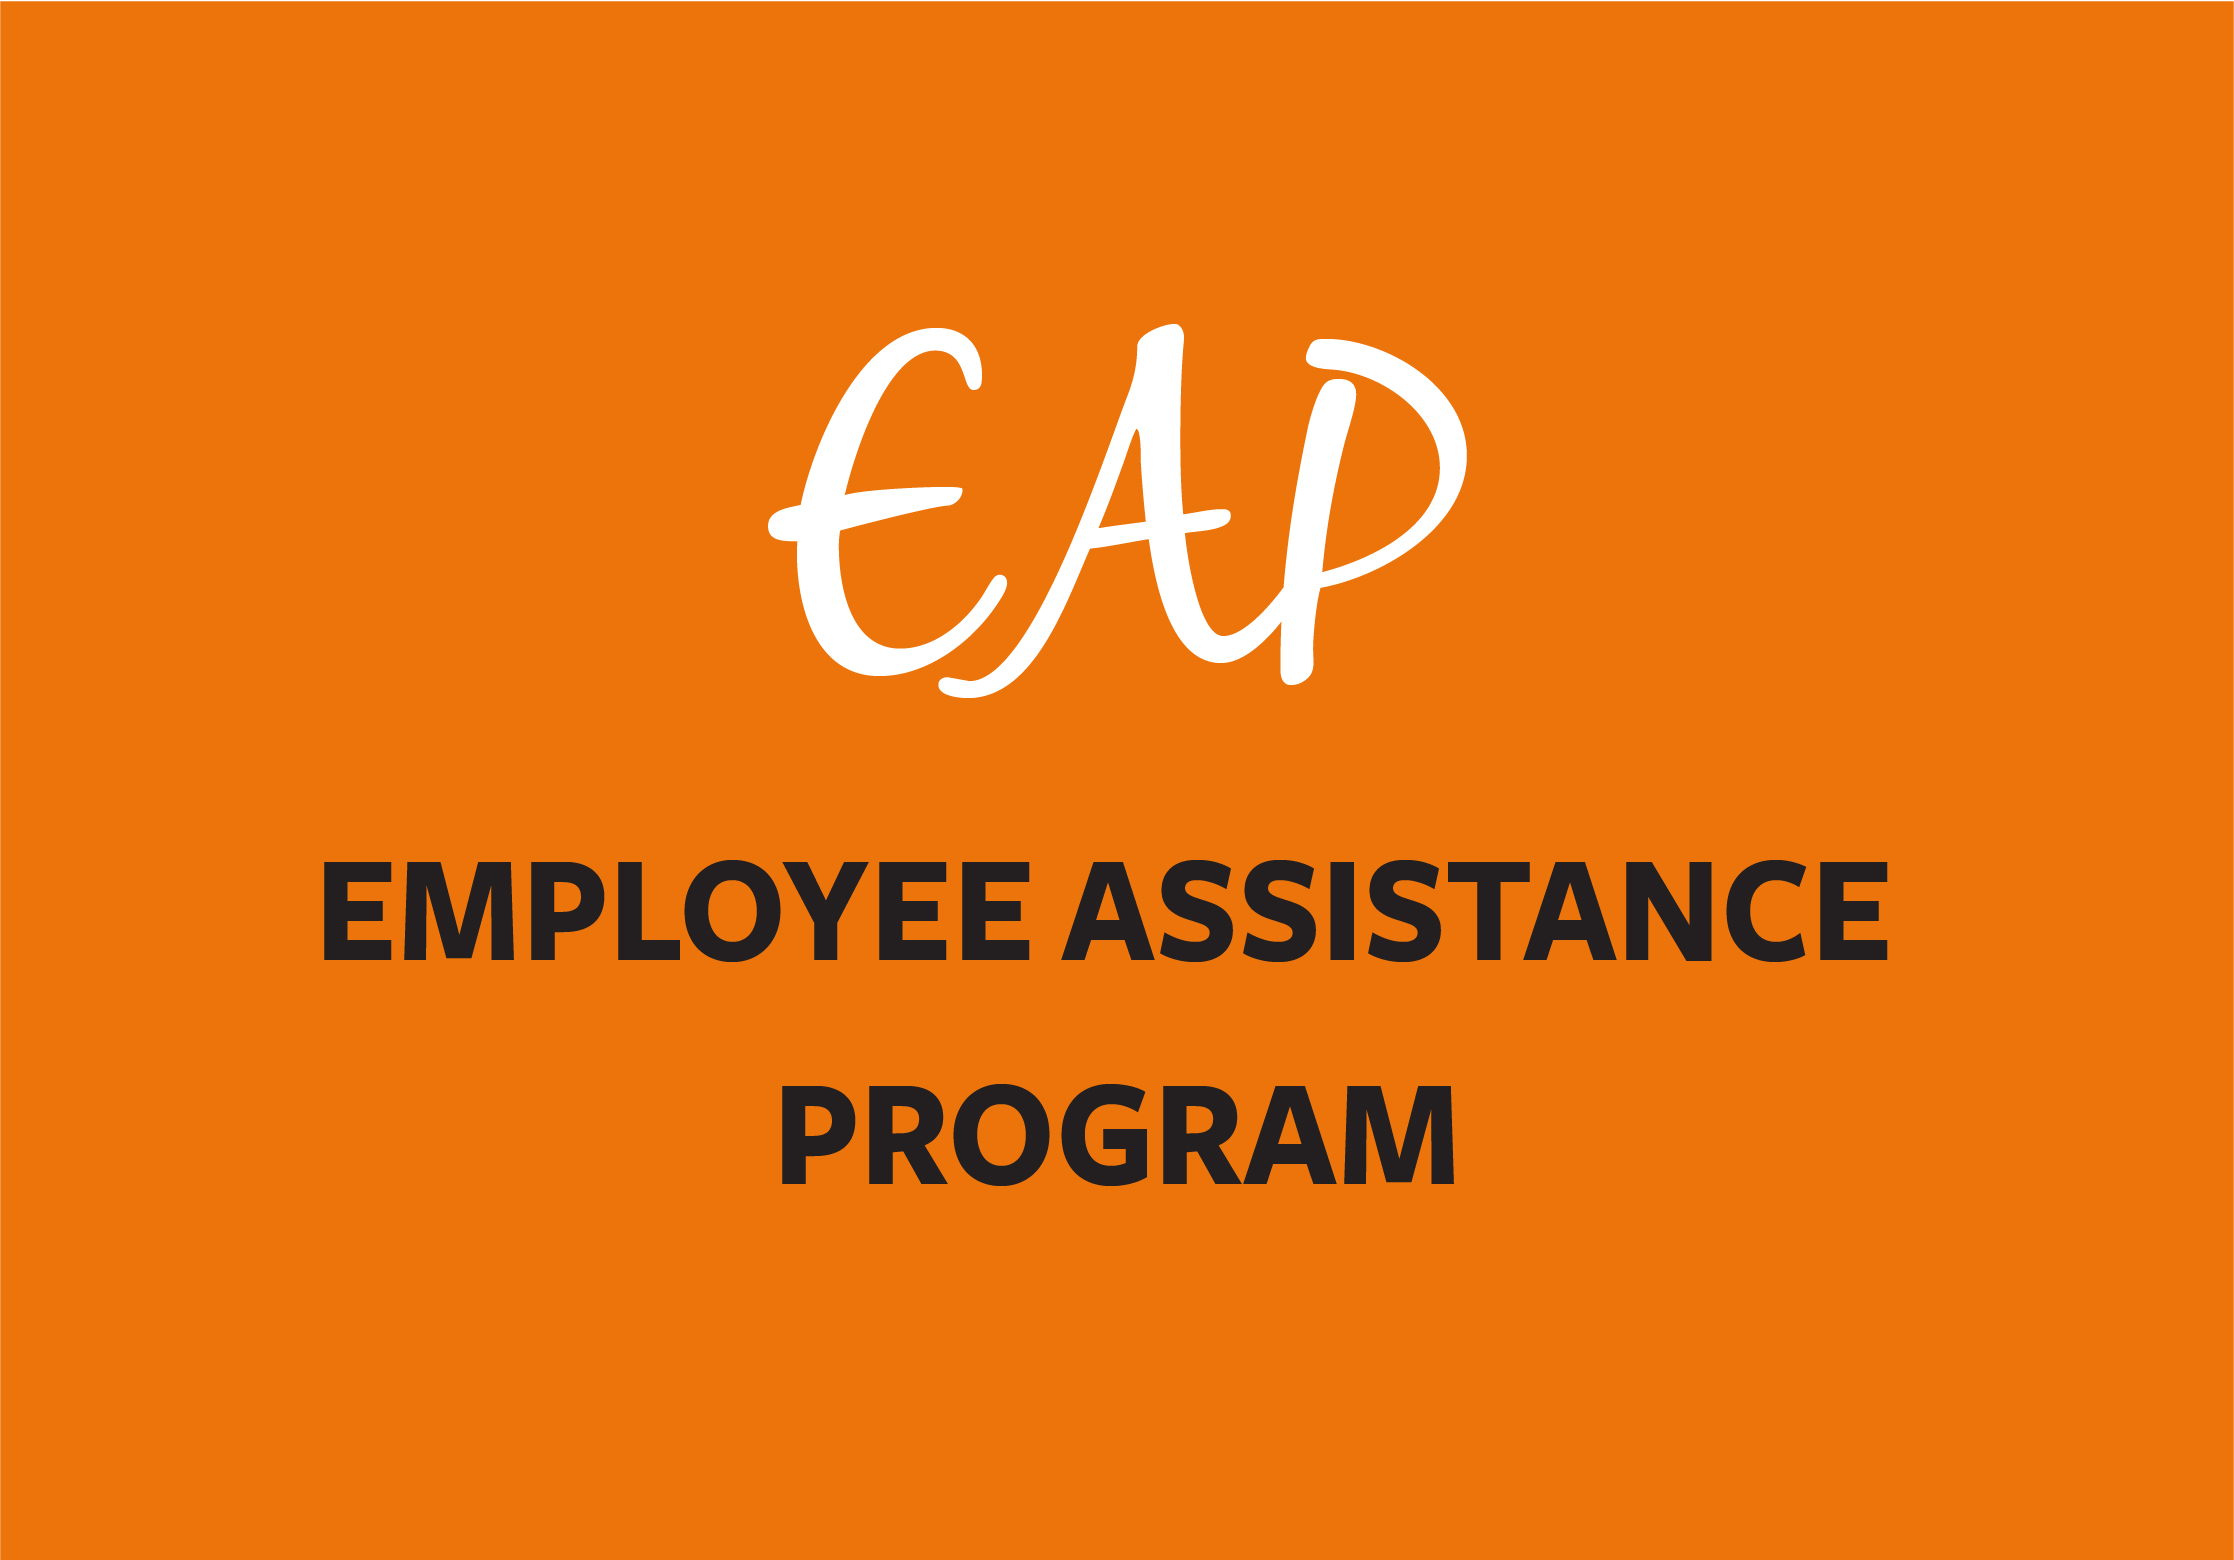 link to the Employee Assistance Program page